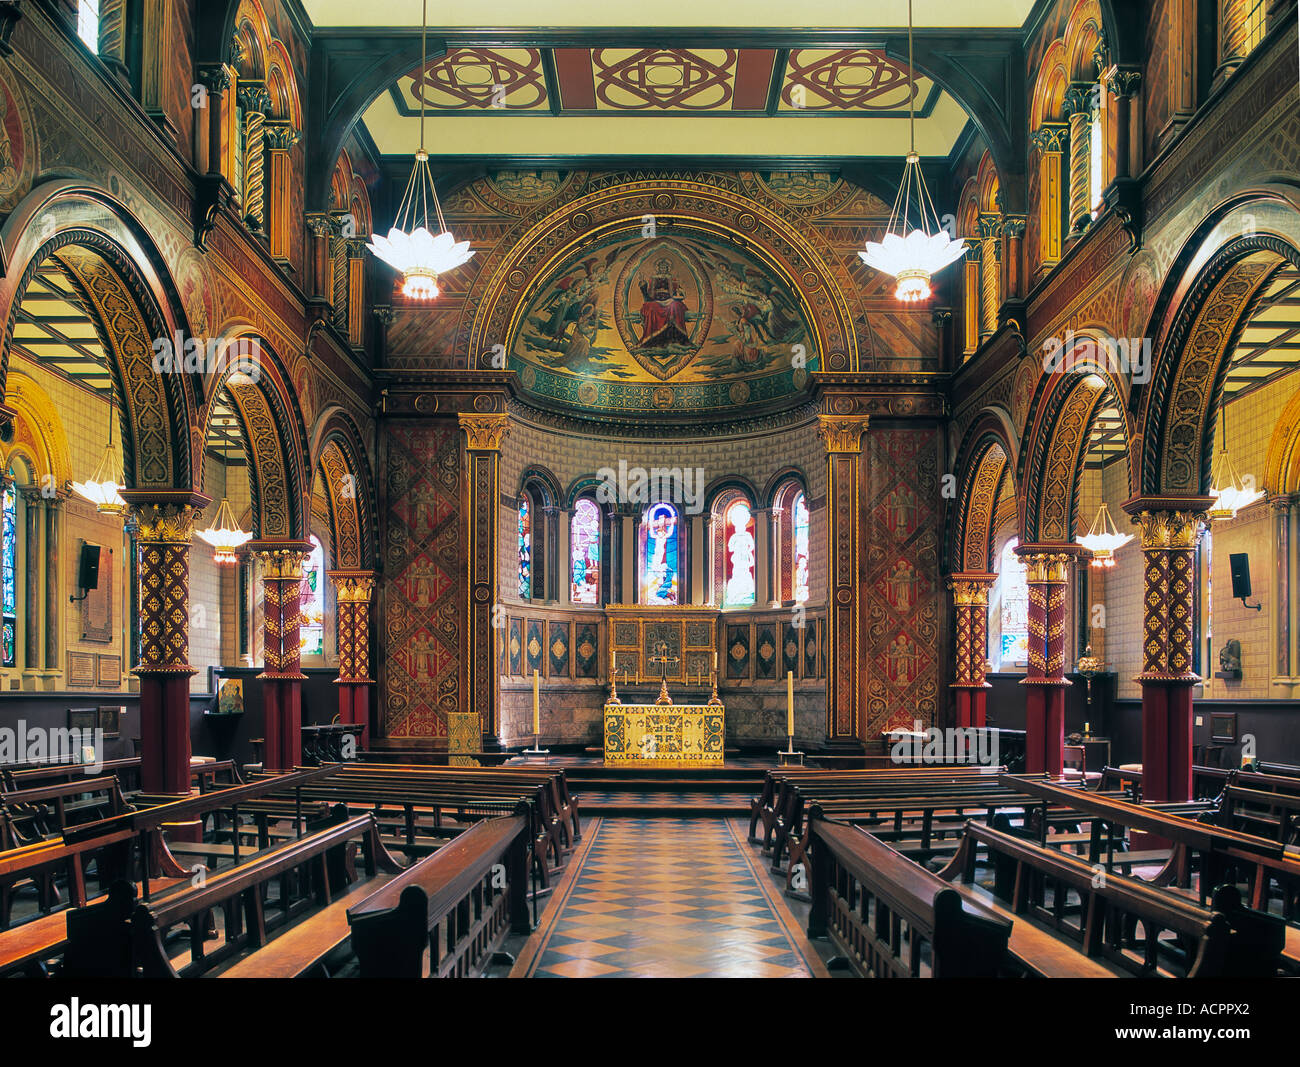 Byzantine interior of the Strand Chapel at Kings College London by George Gilbert Scott Stock Photo